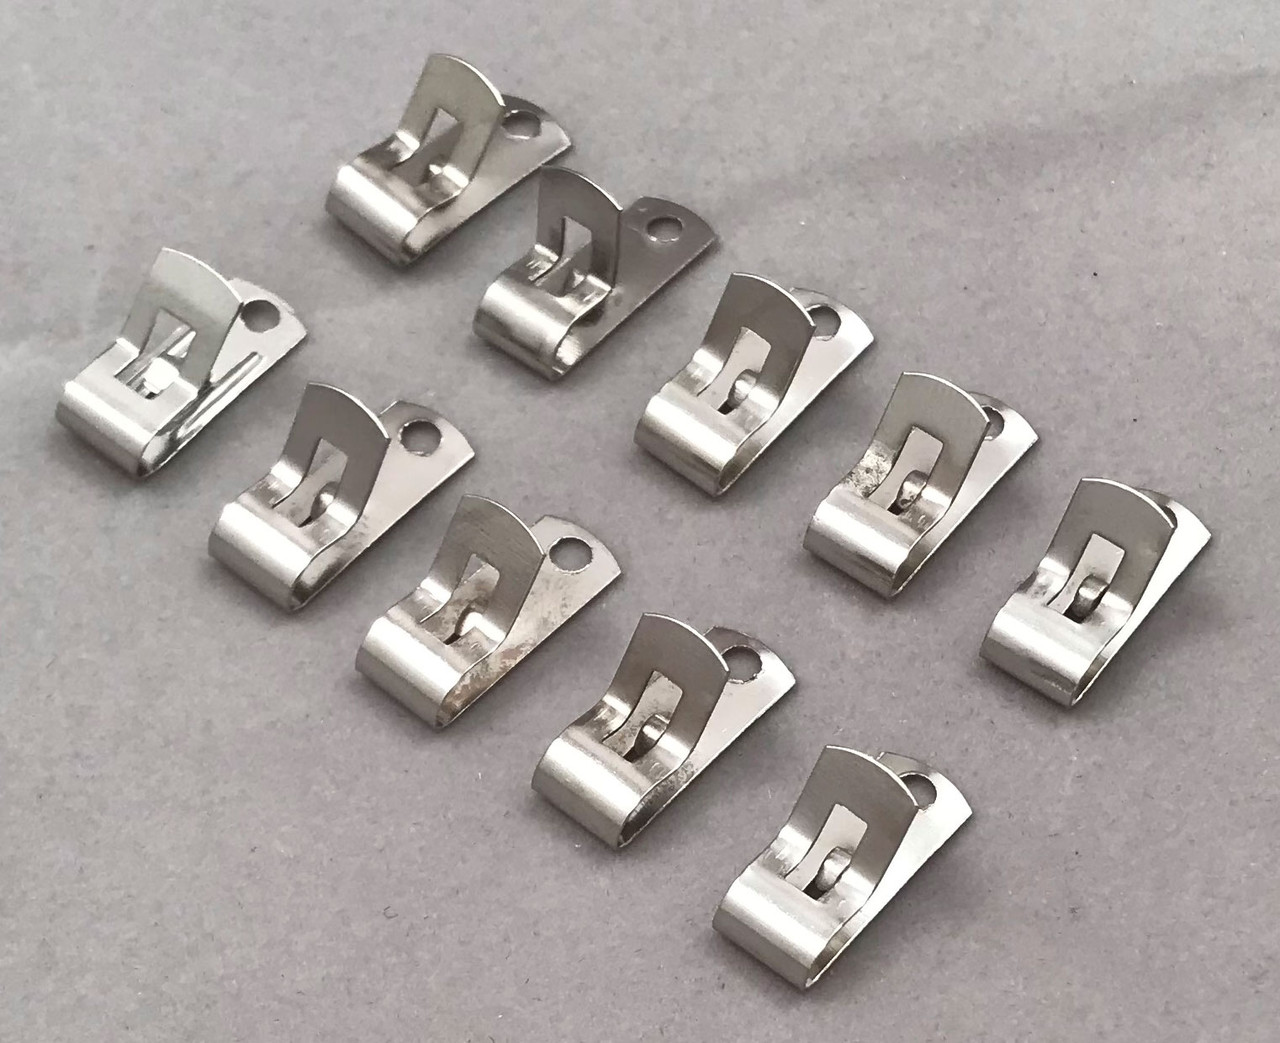 Fahnestock Clips, Spring clips, Plated Steel